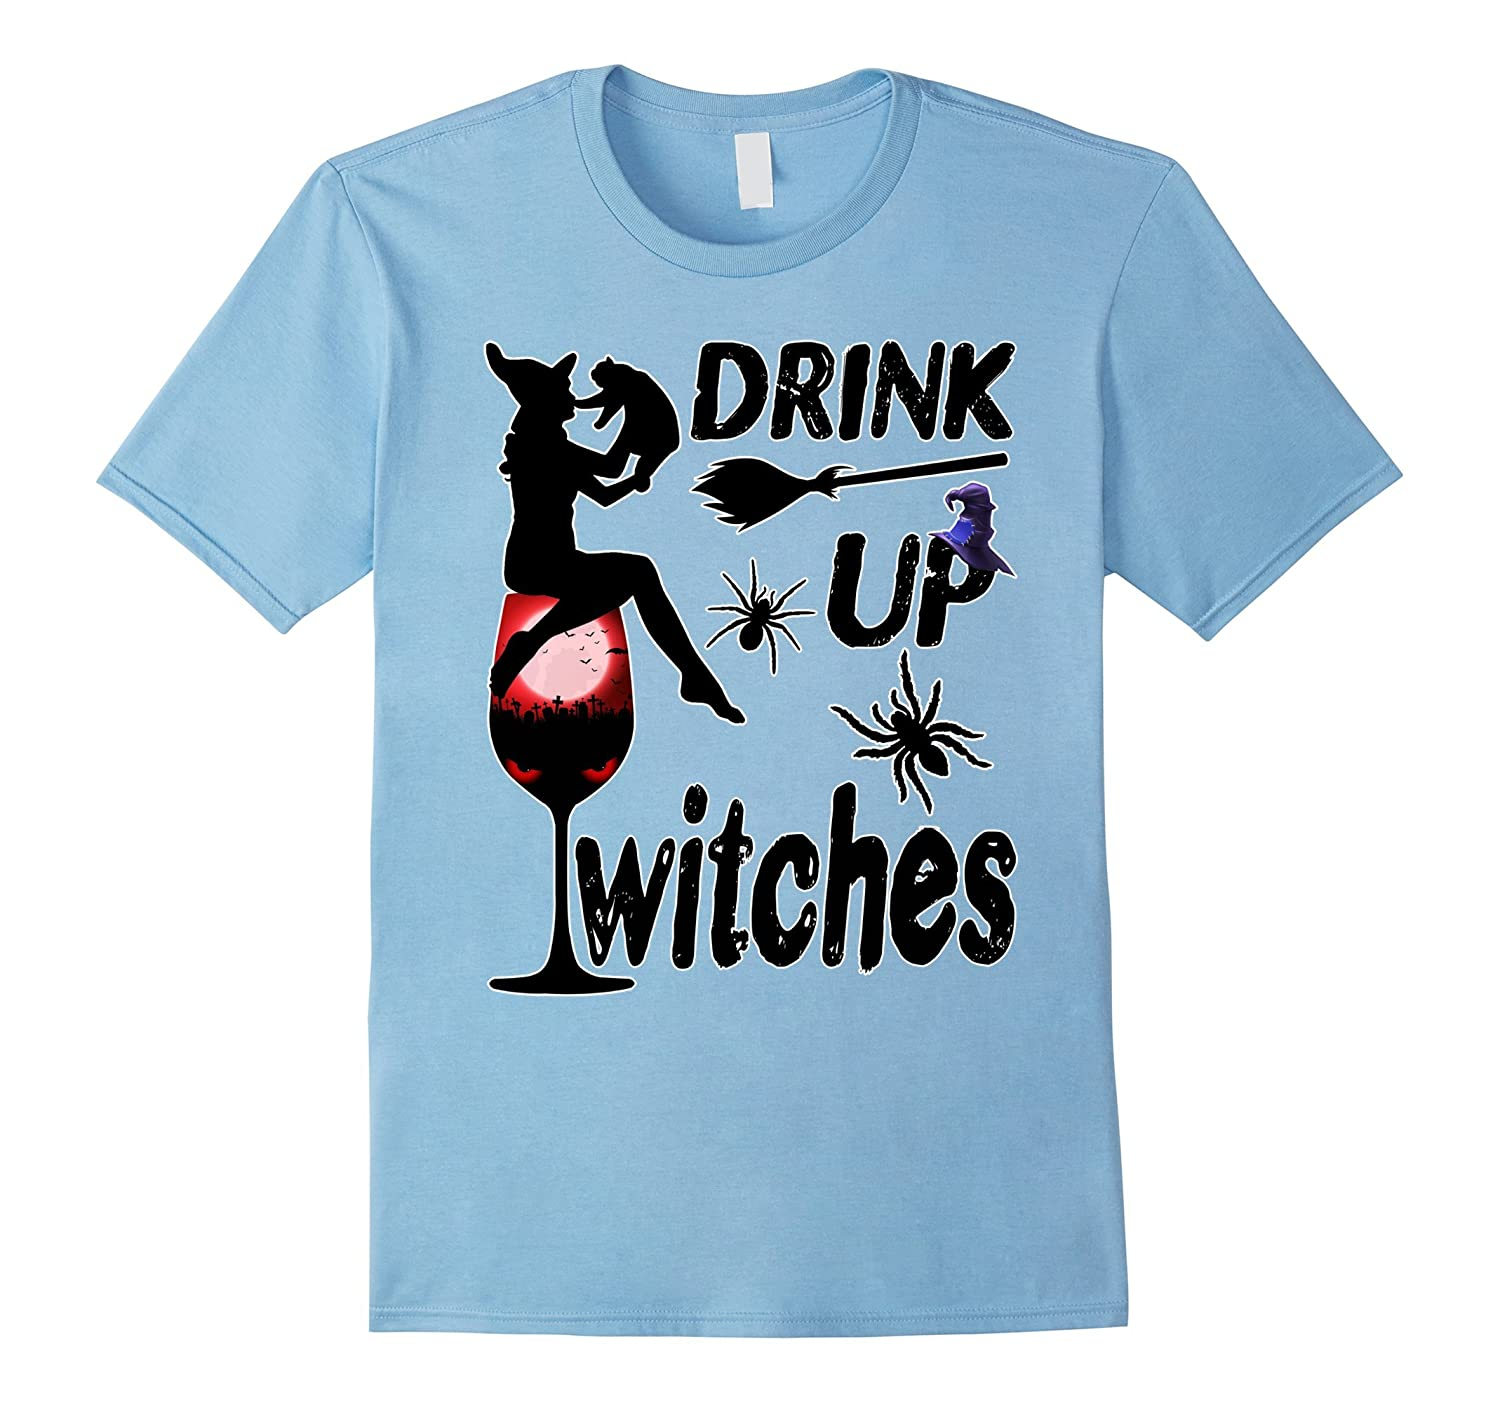 Drink up Witches T Shirt Funny Halloween Costume Cute Witch-FL